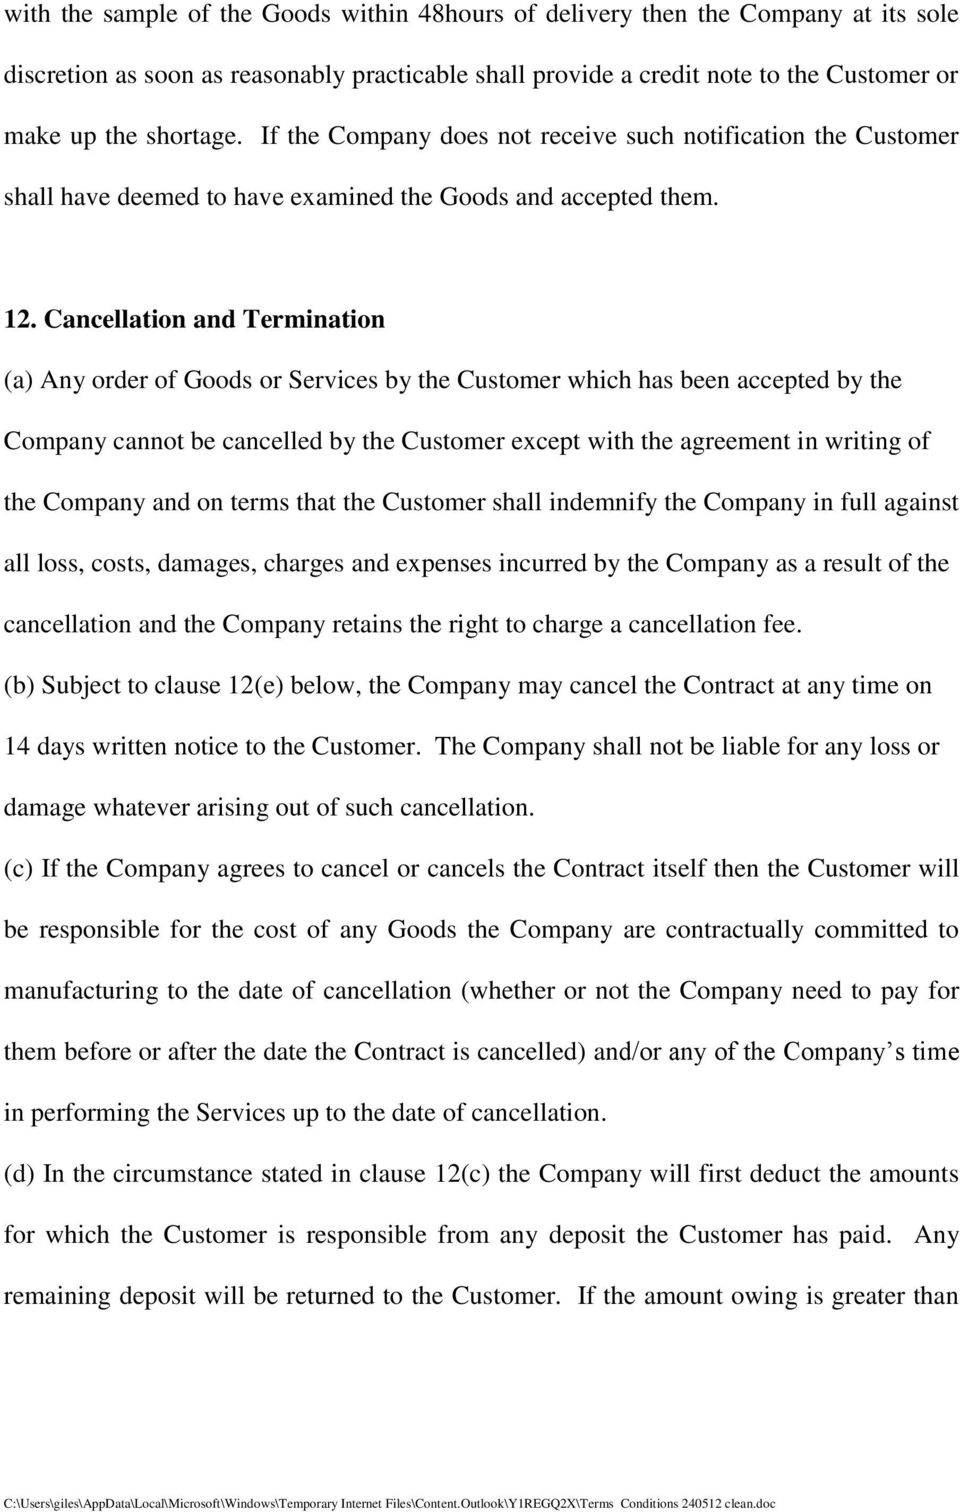 Cancellation and Termination (a) Any order of Goods or Services by the Customer which has been accepted by the Company cannot be cancelled by the Customer except with the agreement in writing of the